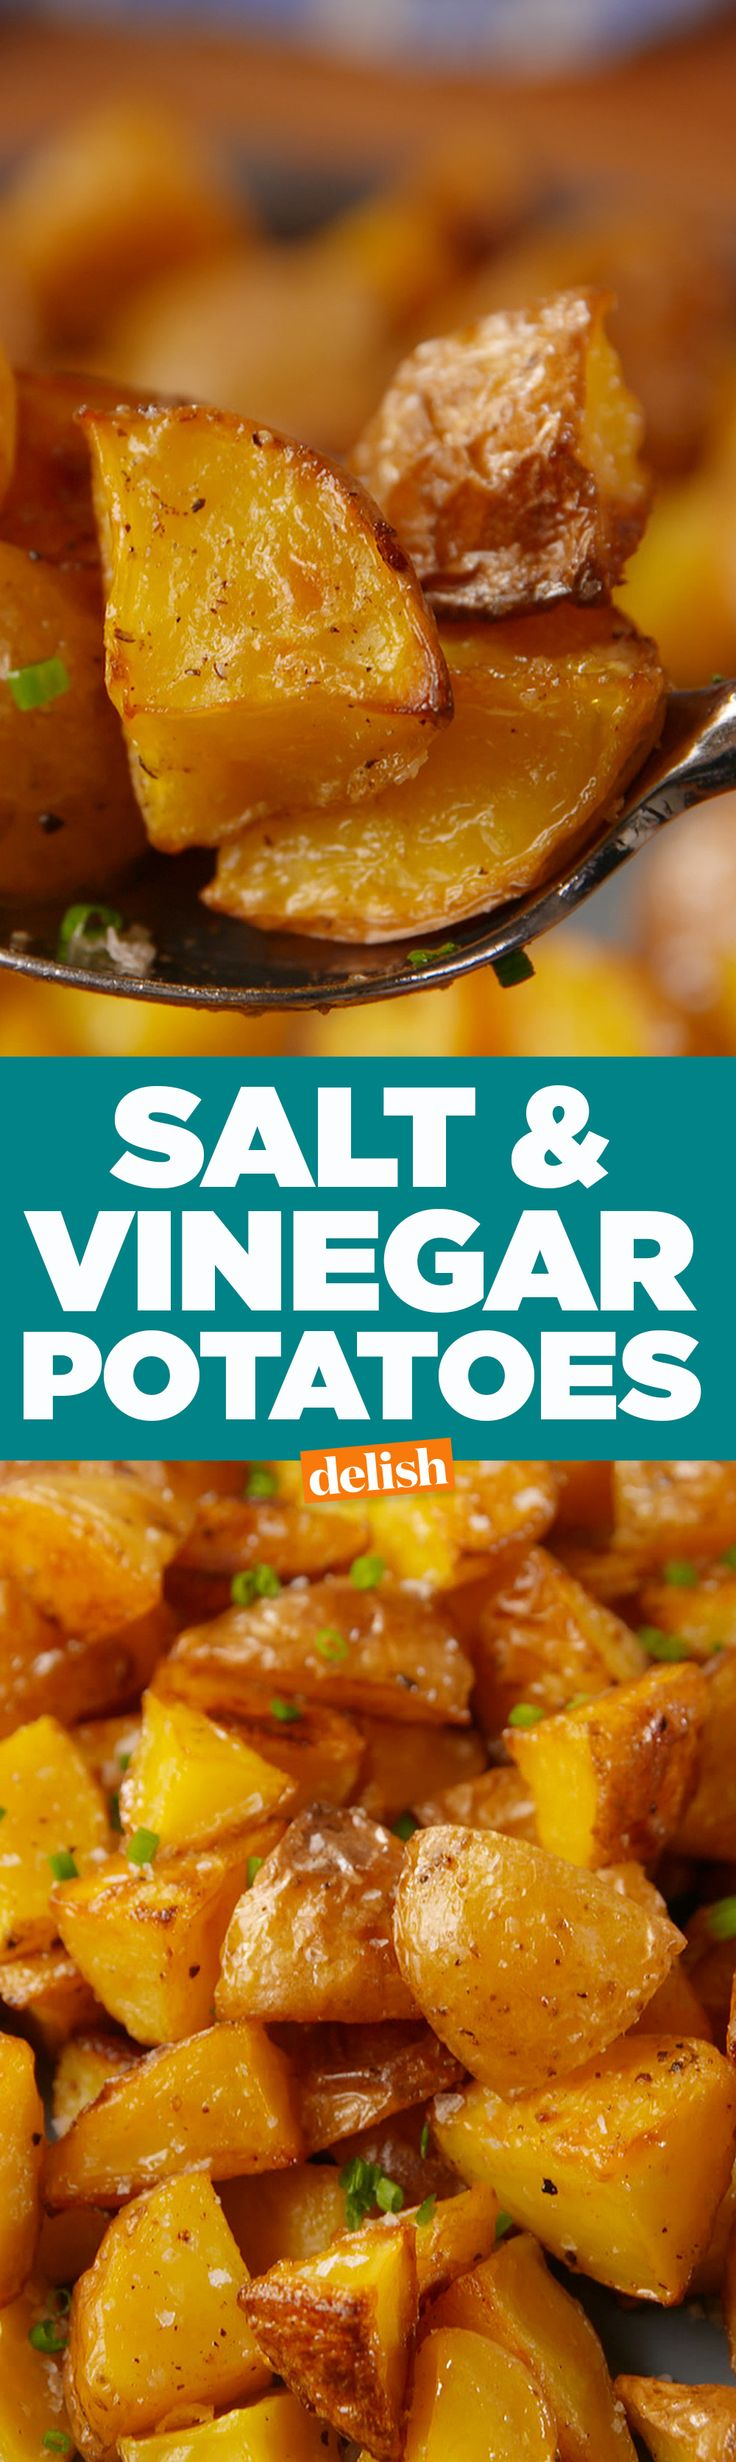 If you love the chips, you need to try these Salt & Vinegar Potatoes for dinner. Get the recipe on Delish.com.